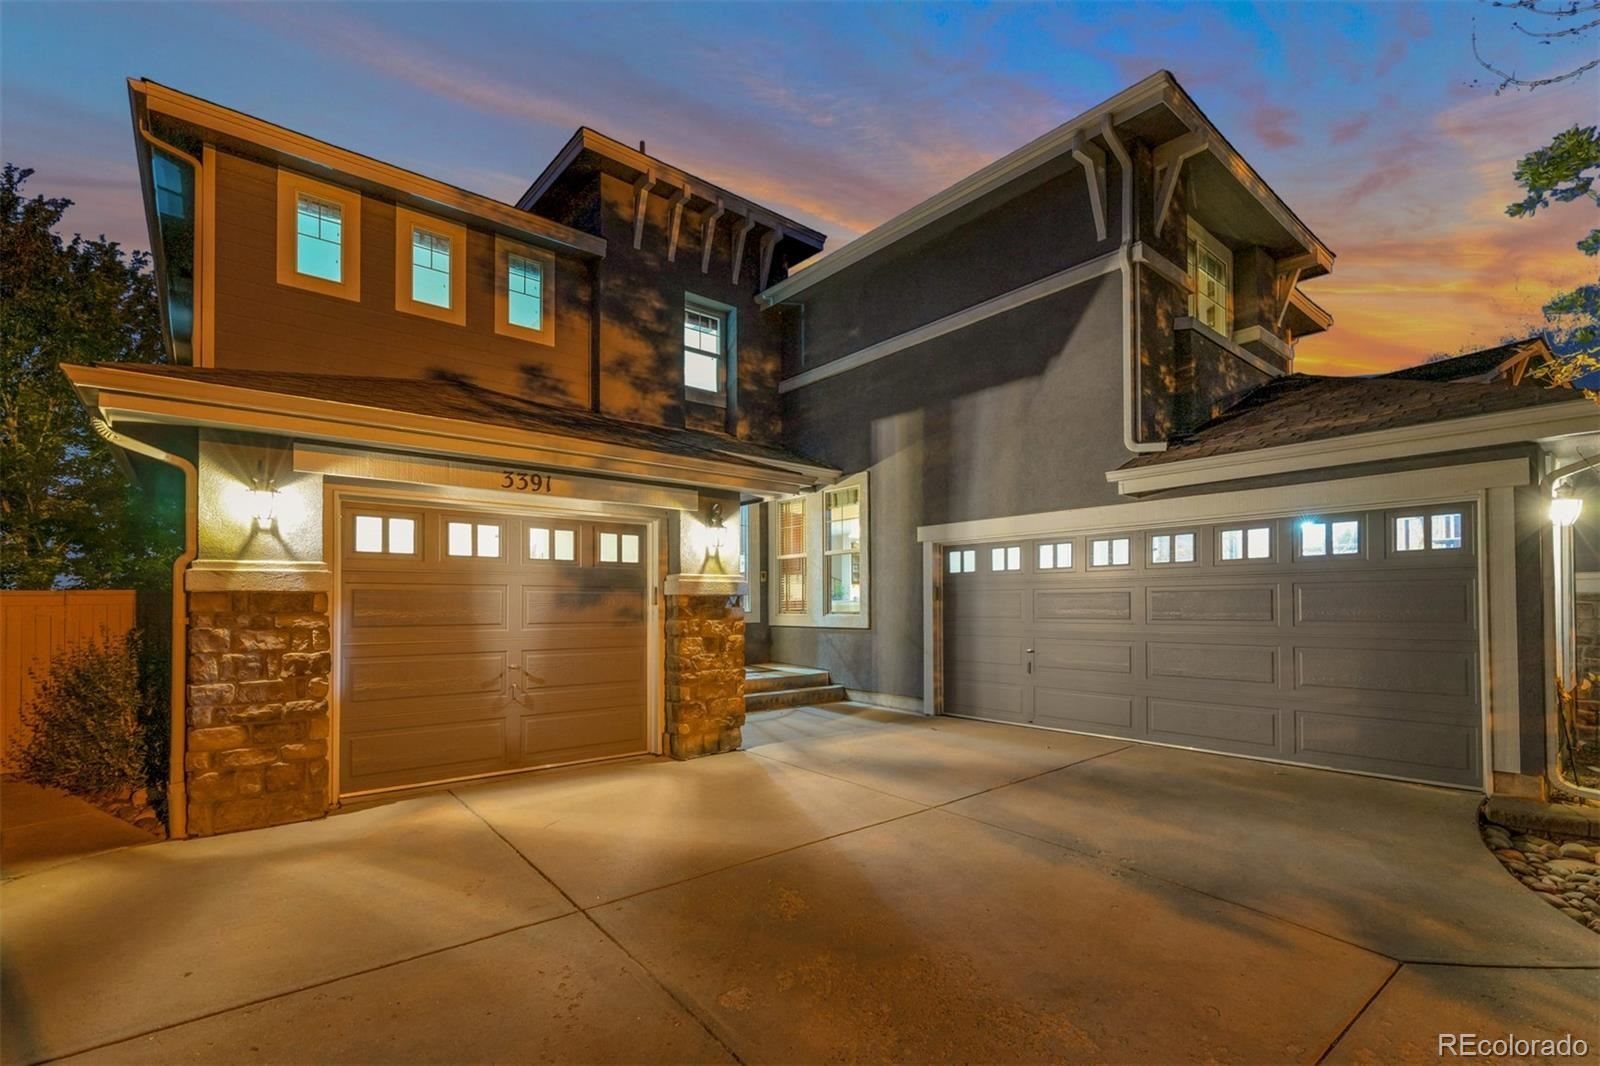 3391 Westhaven Place, Highlands Ranch, CO 80126 - #: 3556479